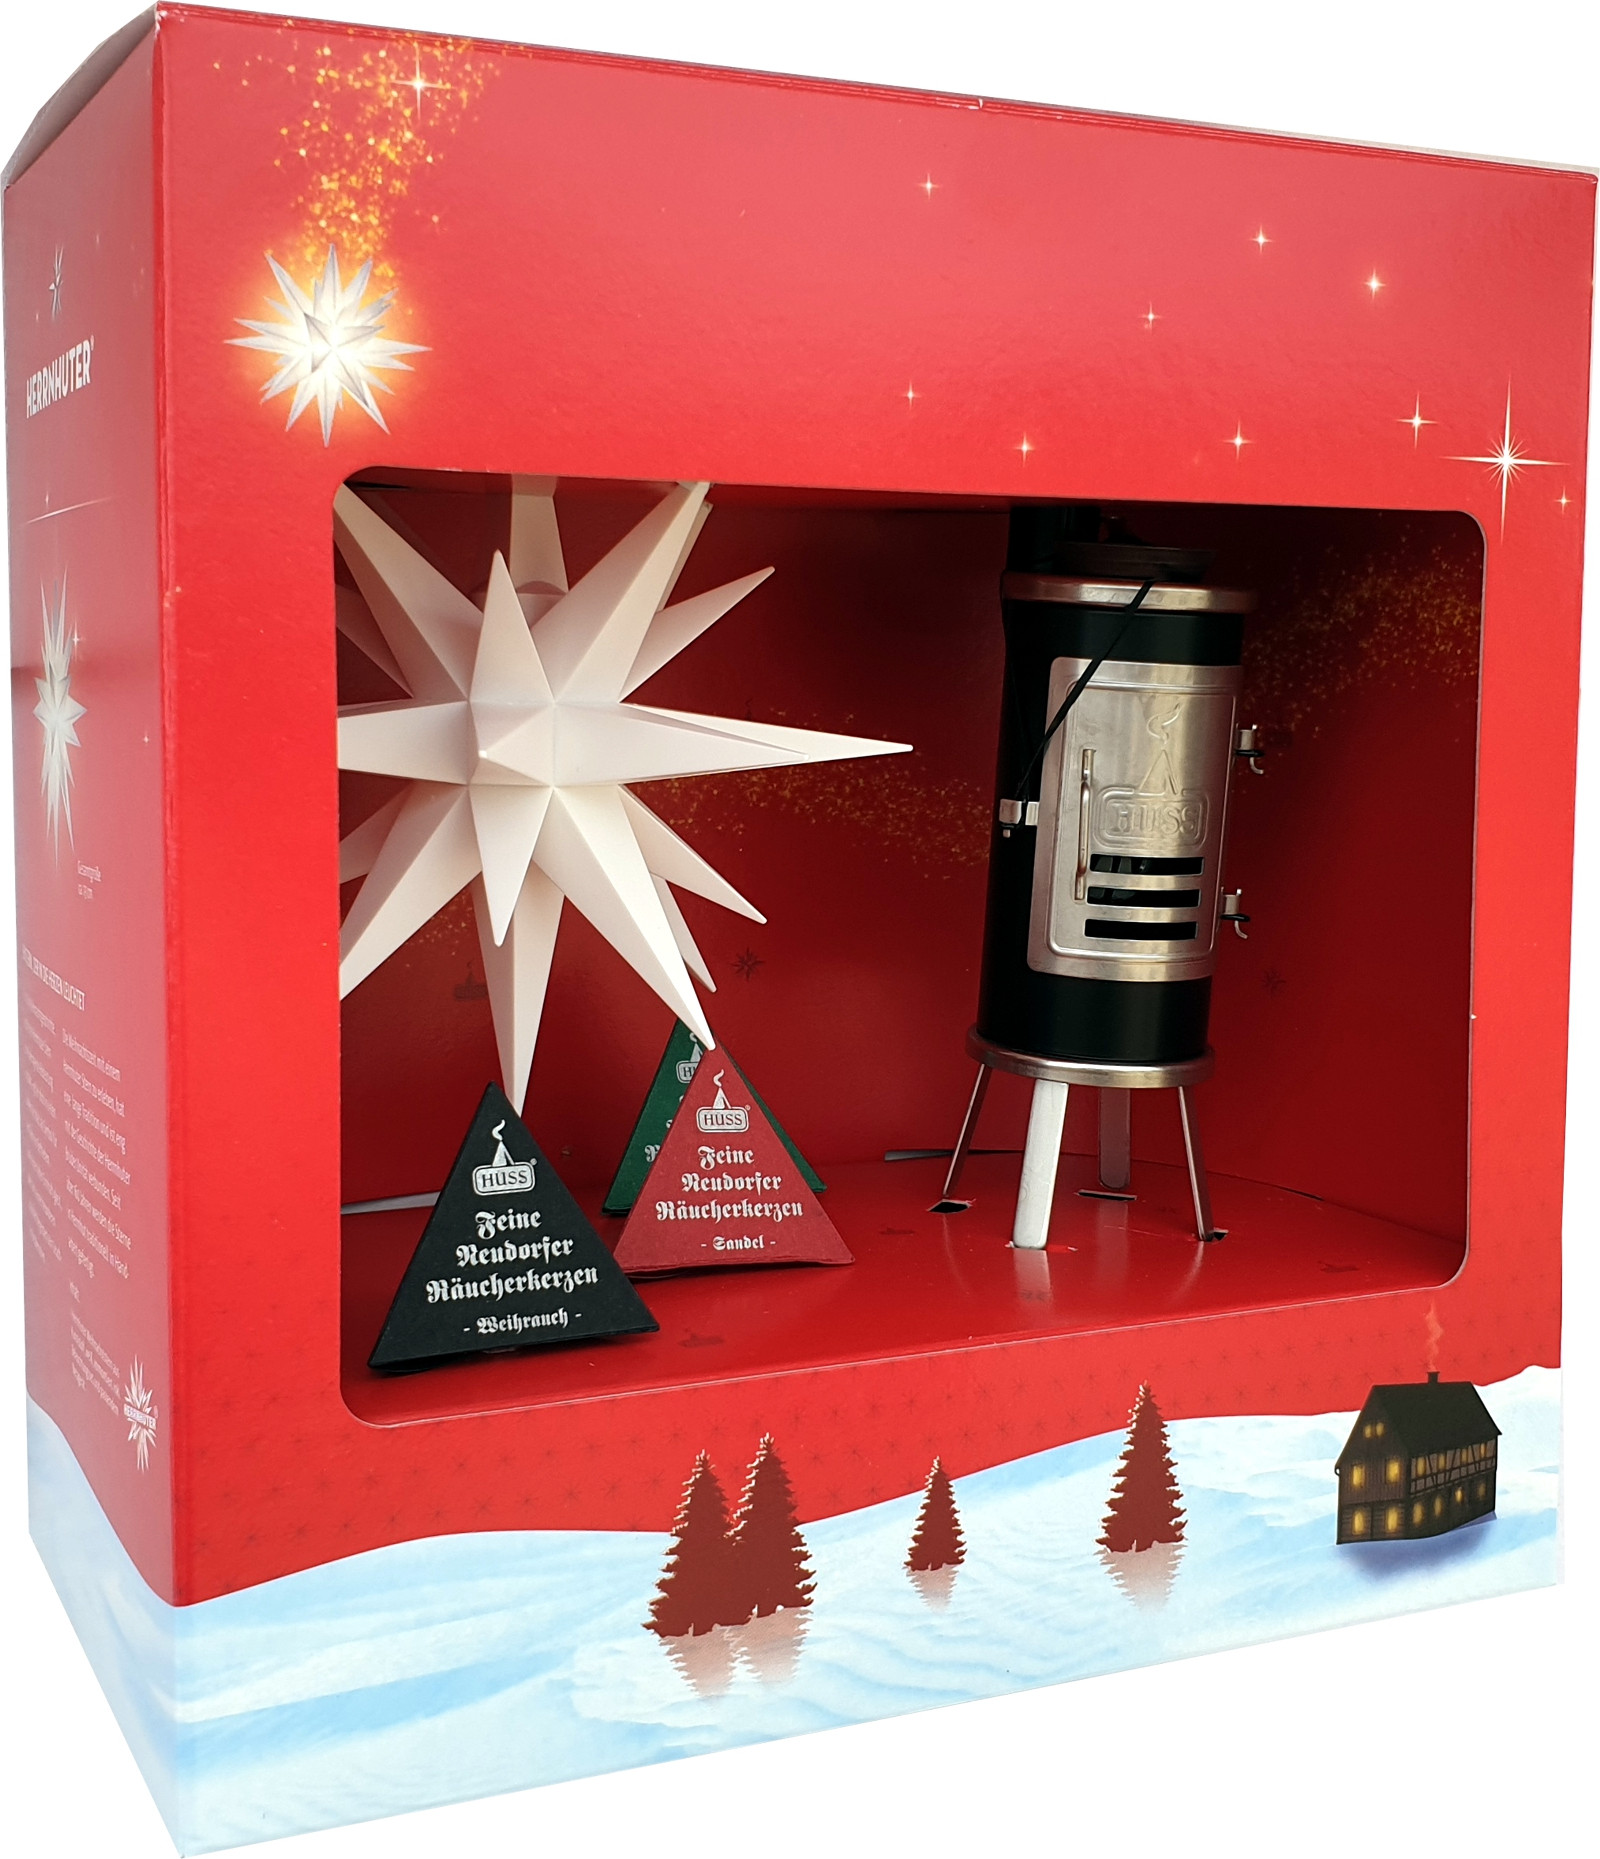 gift wrapping Huss smoker and star A1e white